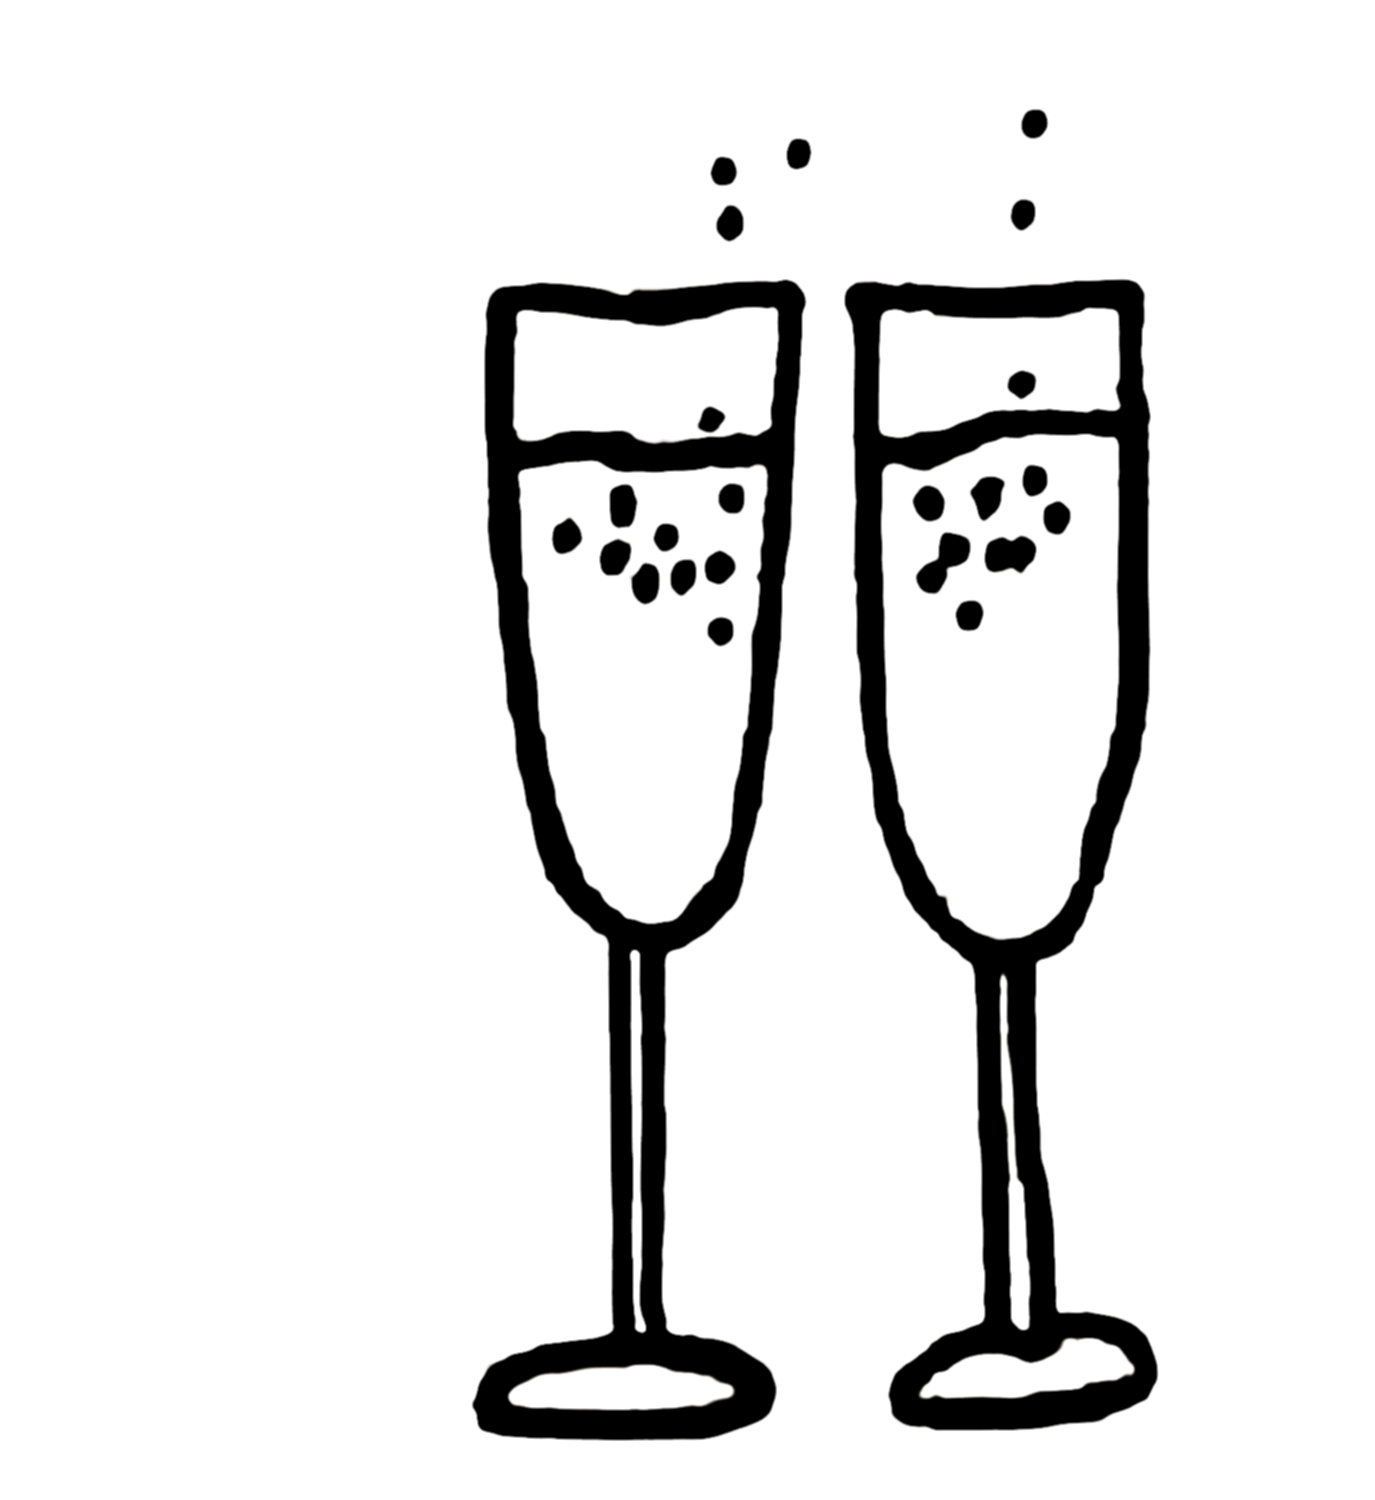 Free Champagne Glasses Images, Download Free Clip Art, Free.